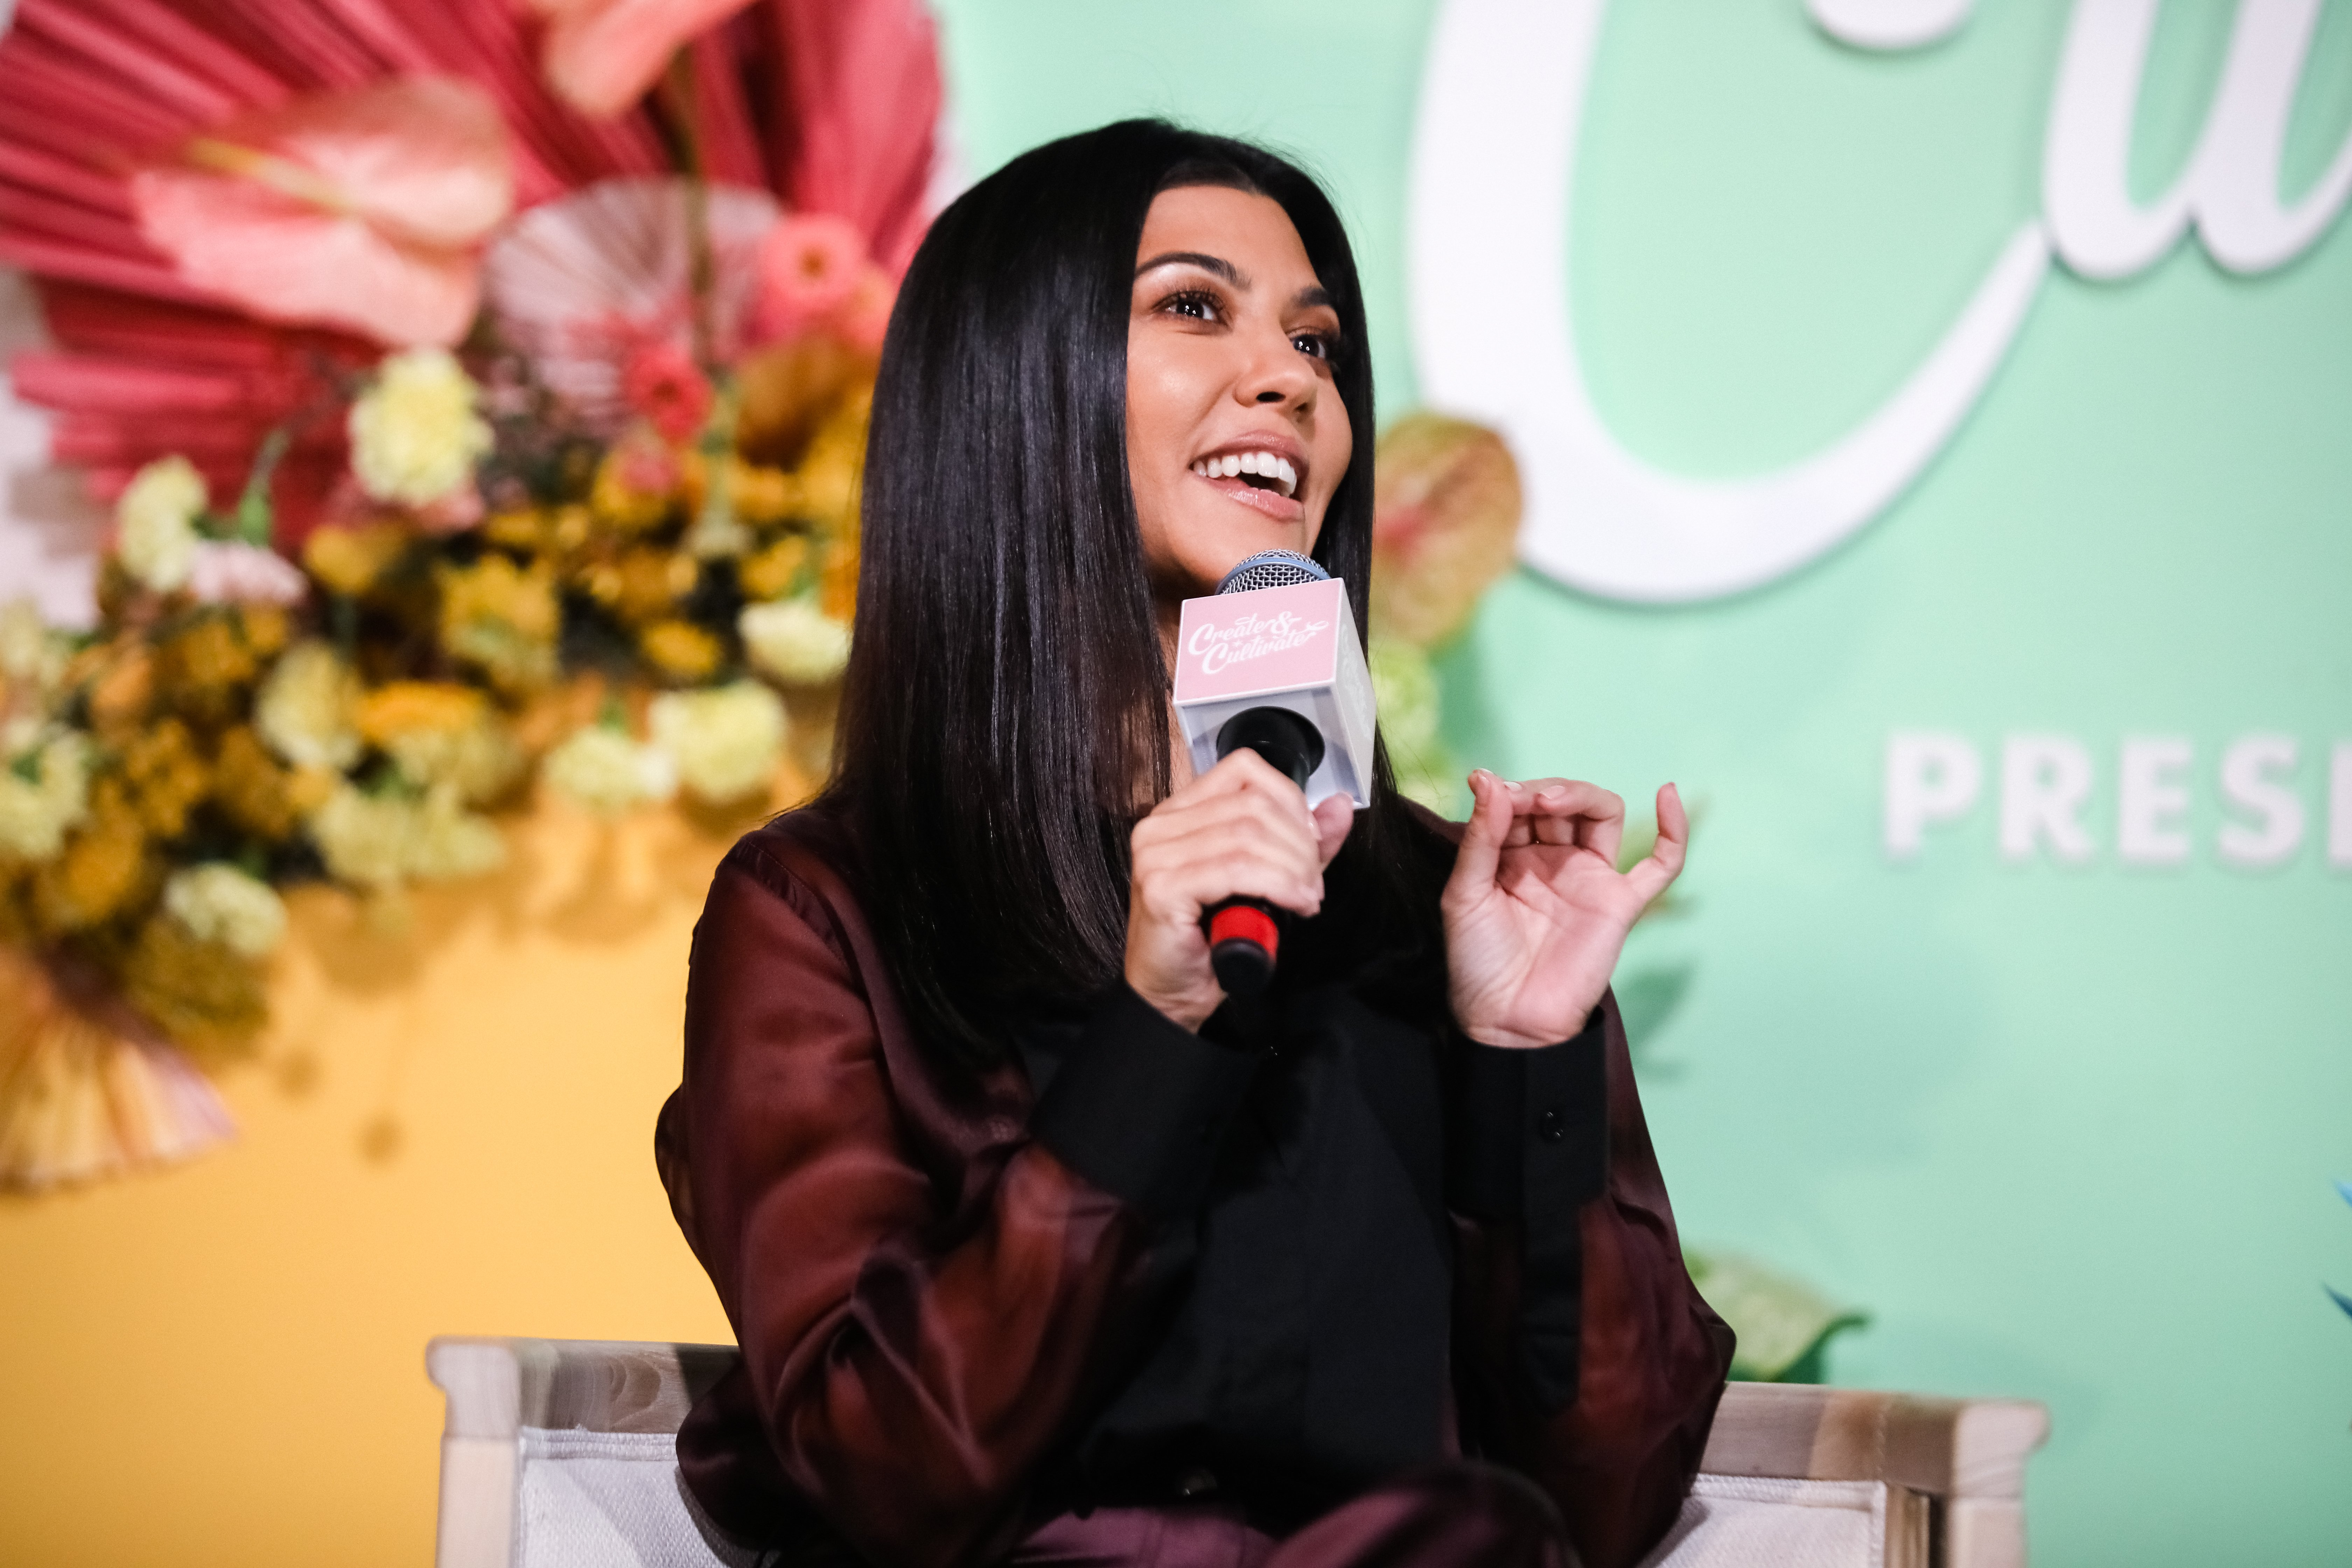 Image Credits: Getty Images / Kelly Sullivan | CEO and founder of Poosh, Kourtney Kardashian speaks onstage the Create & Cultivate Conference